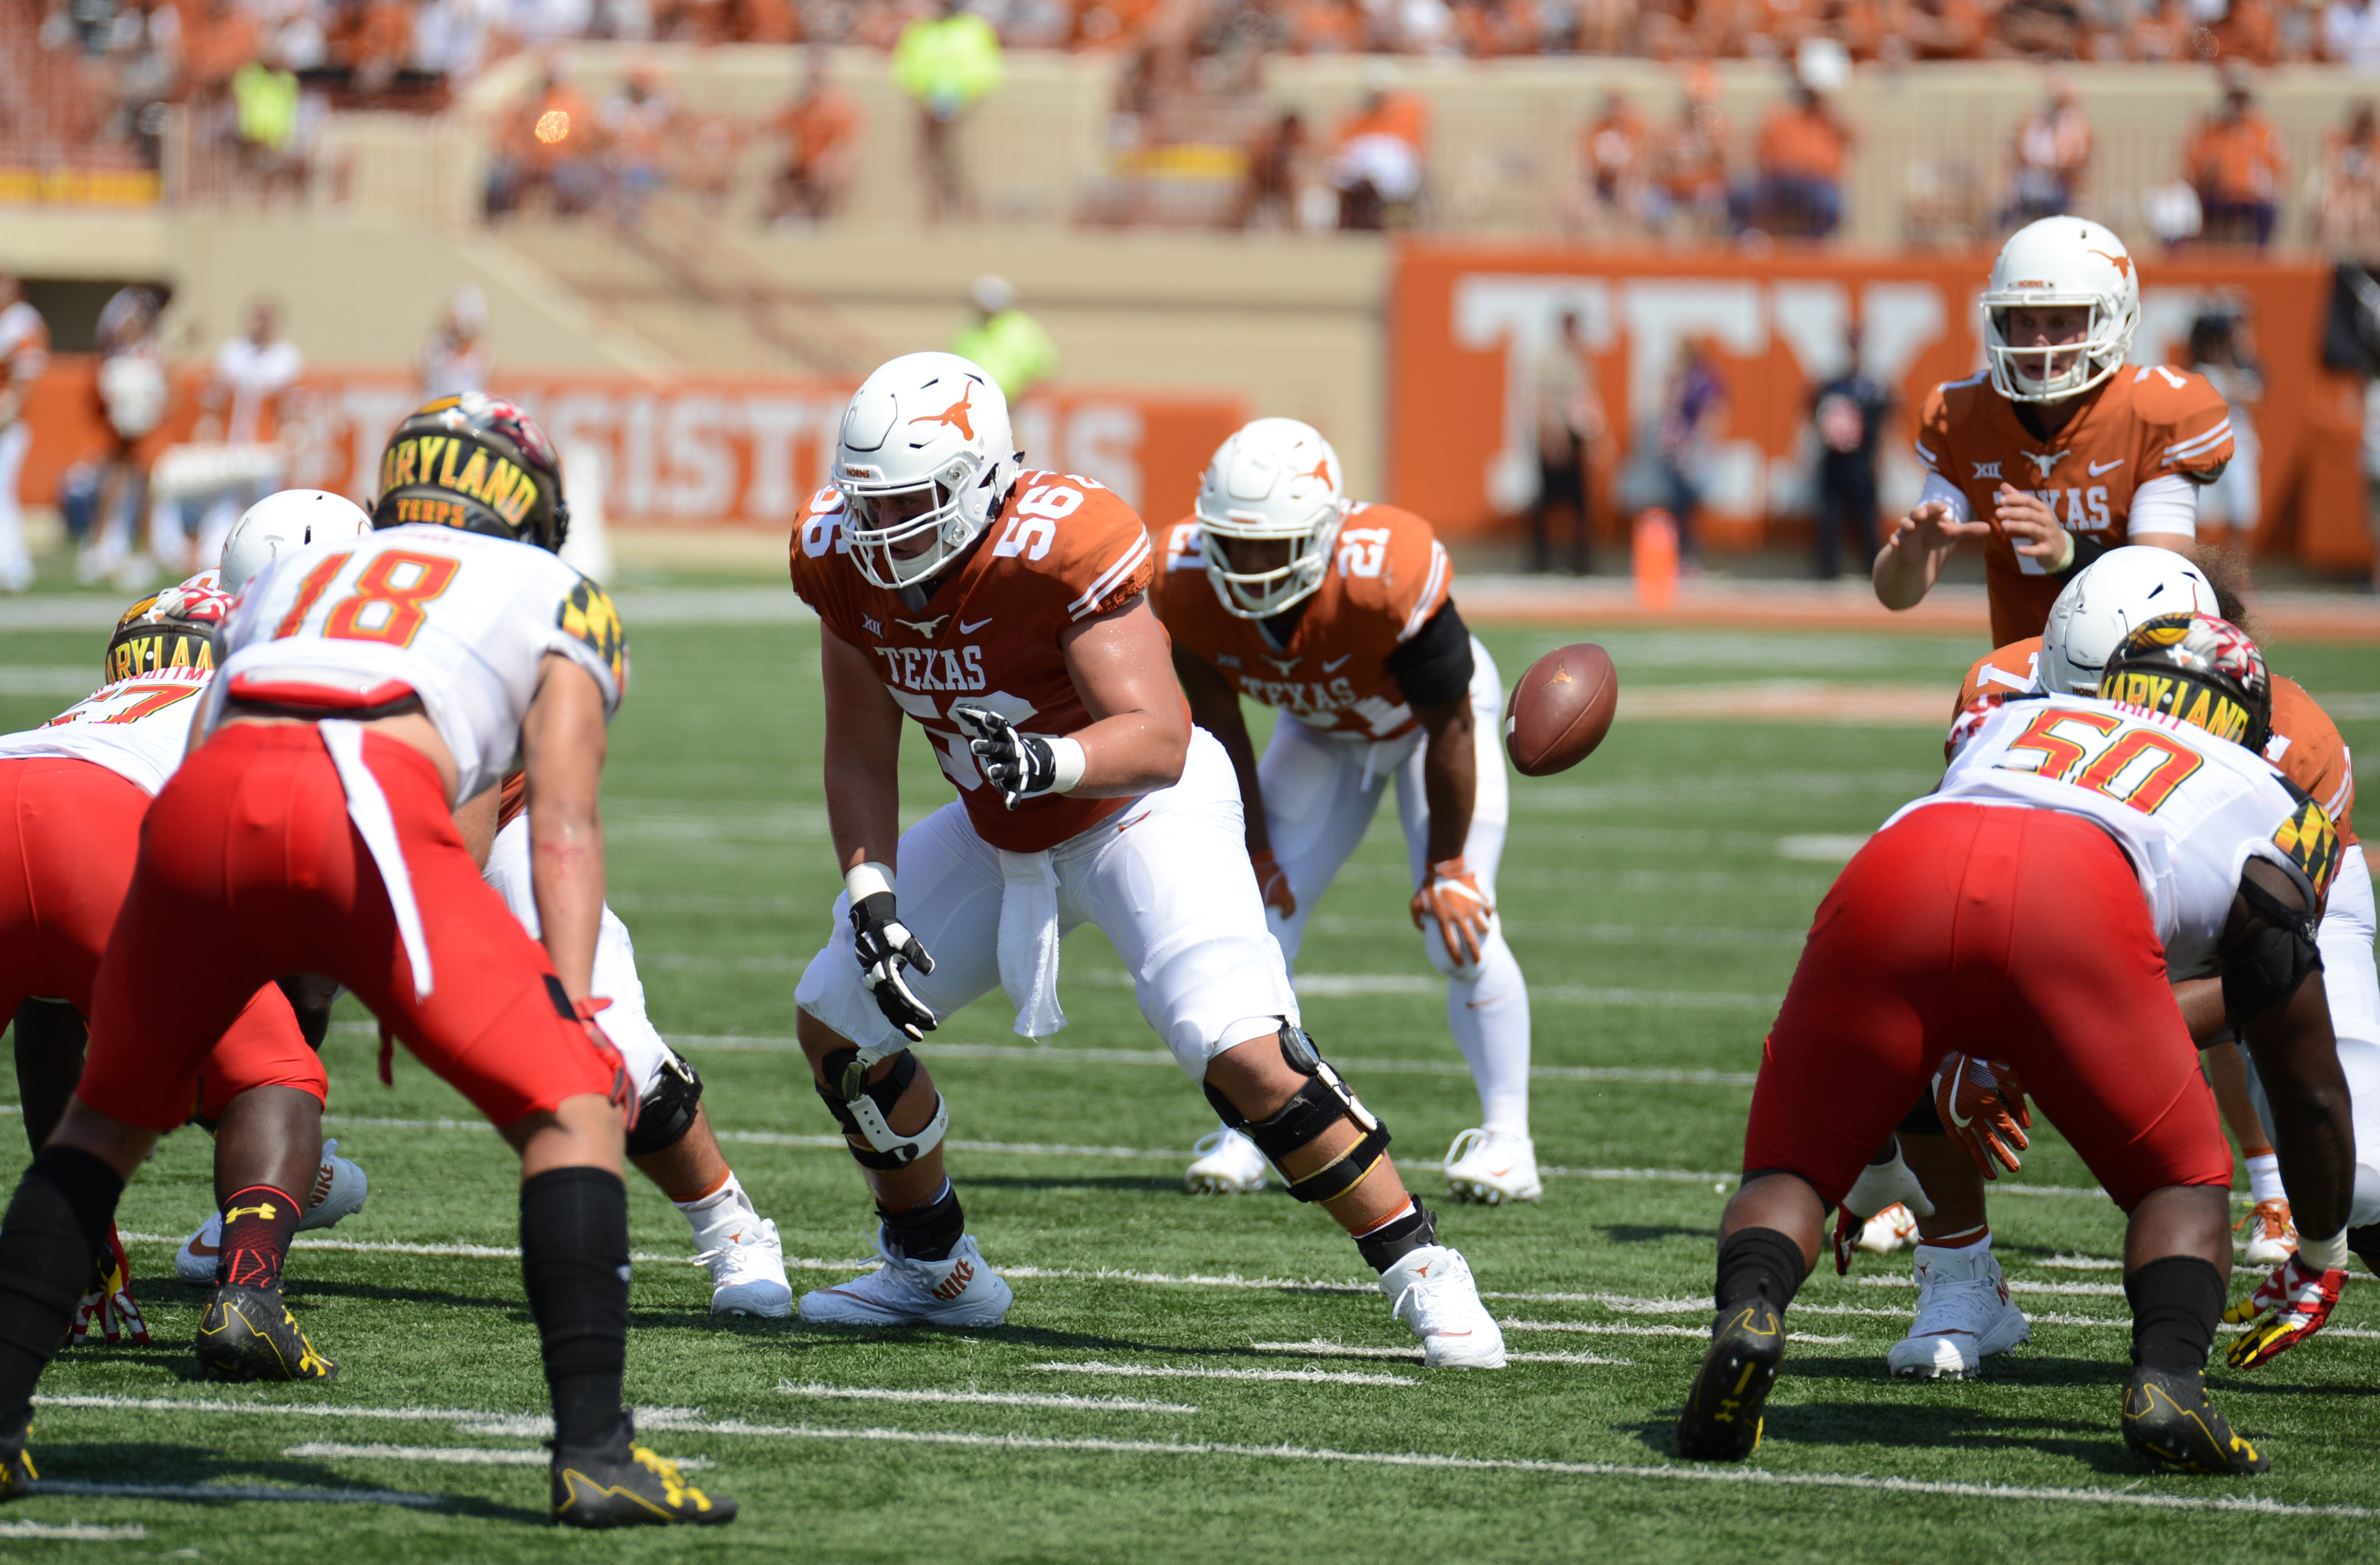 COLLEGE FOOTBALL: SEP 02 Maryland at Texas